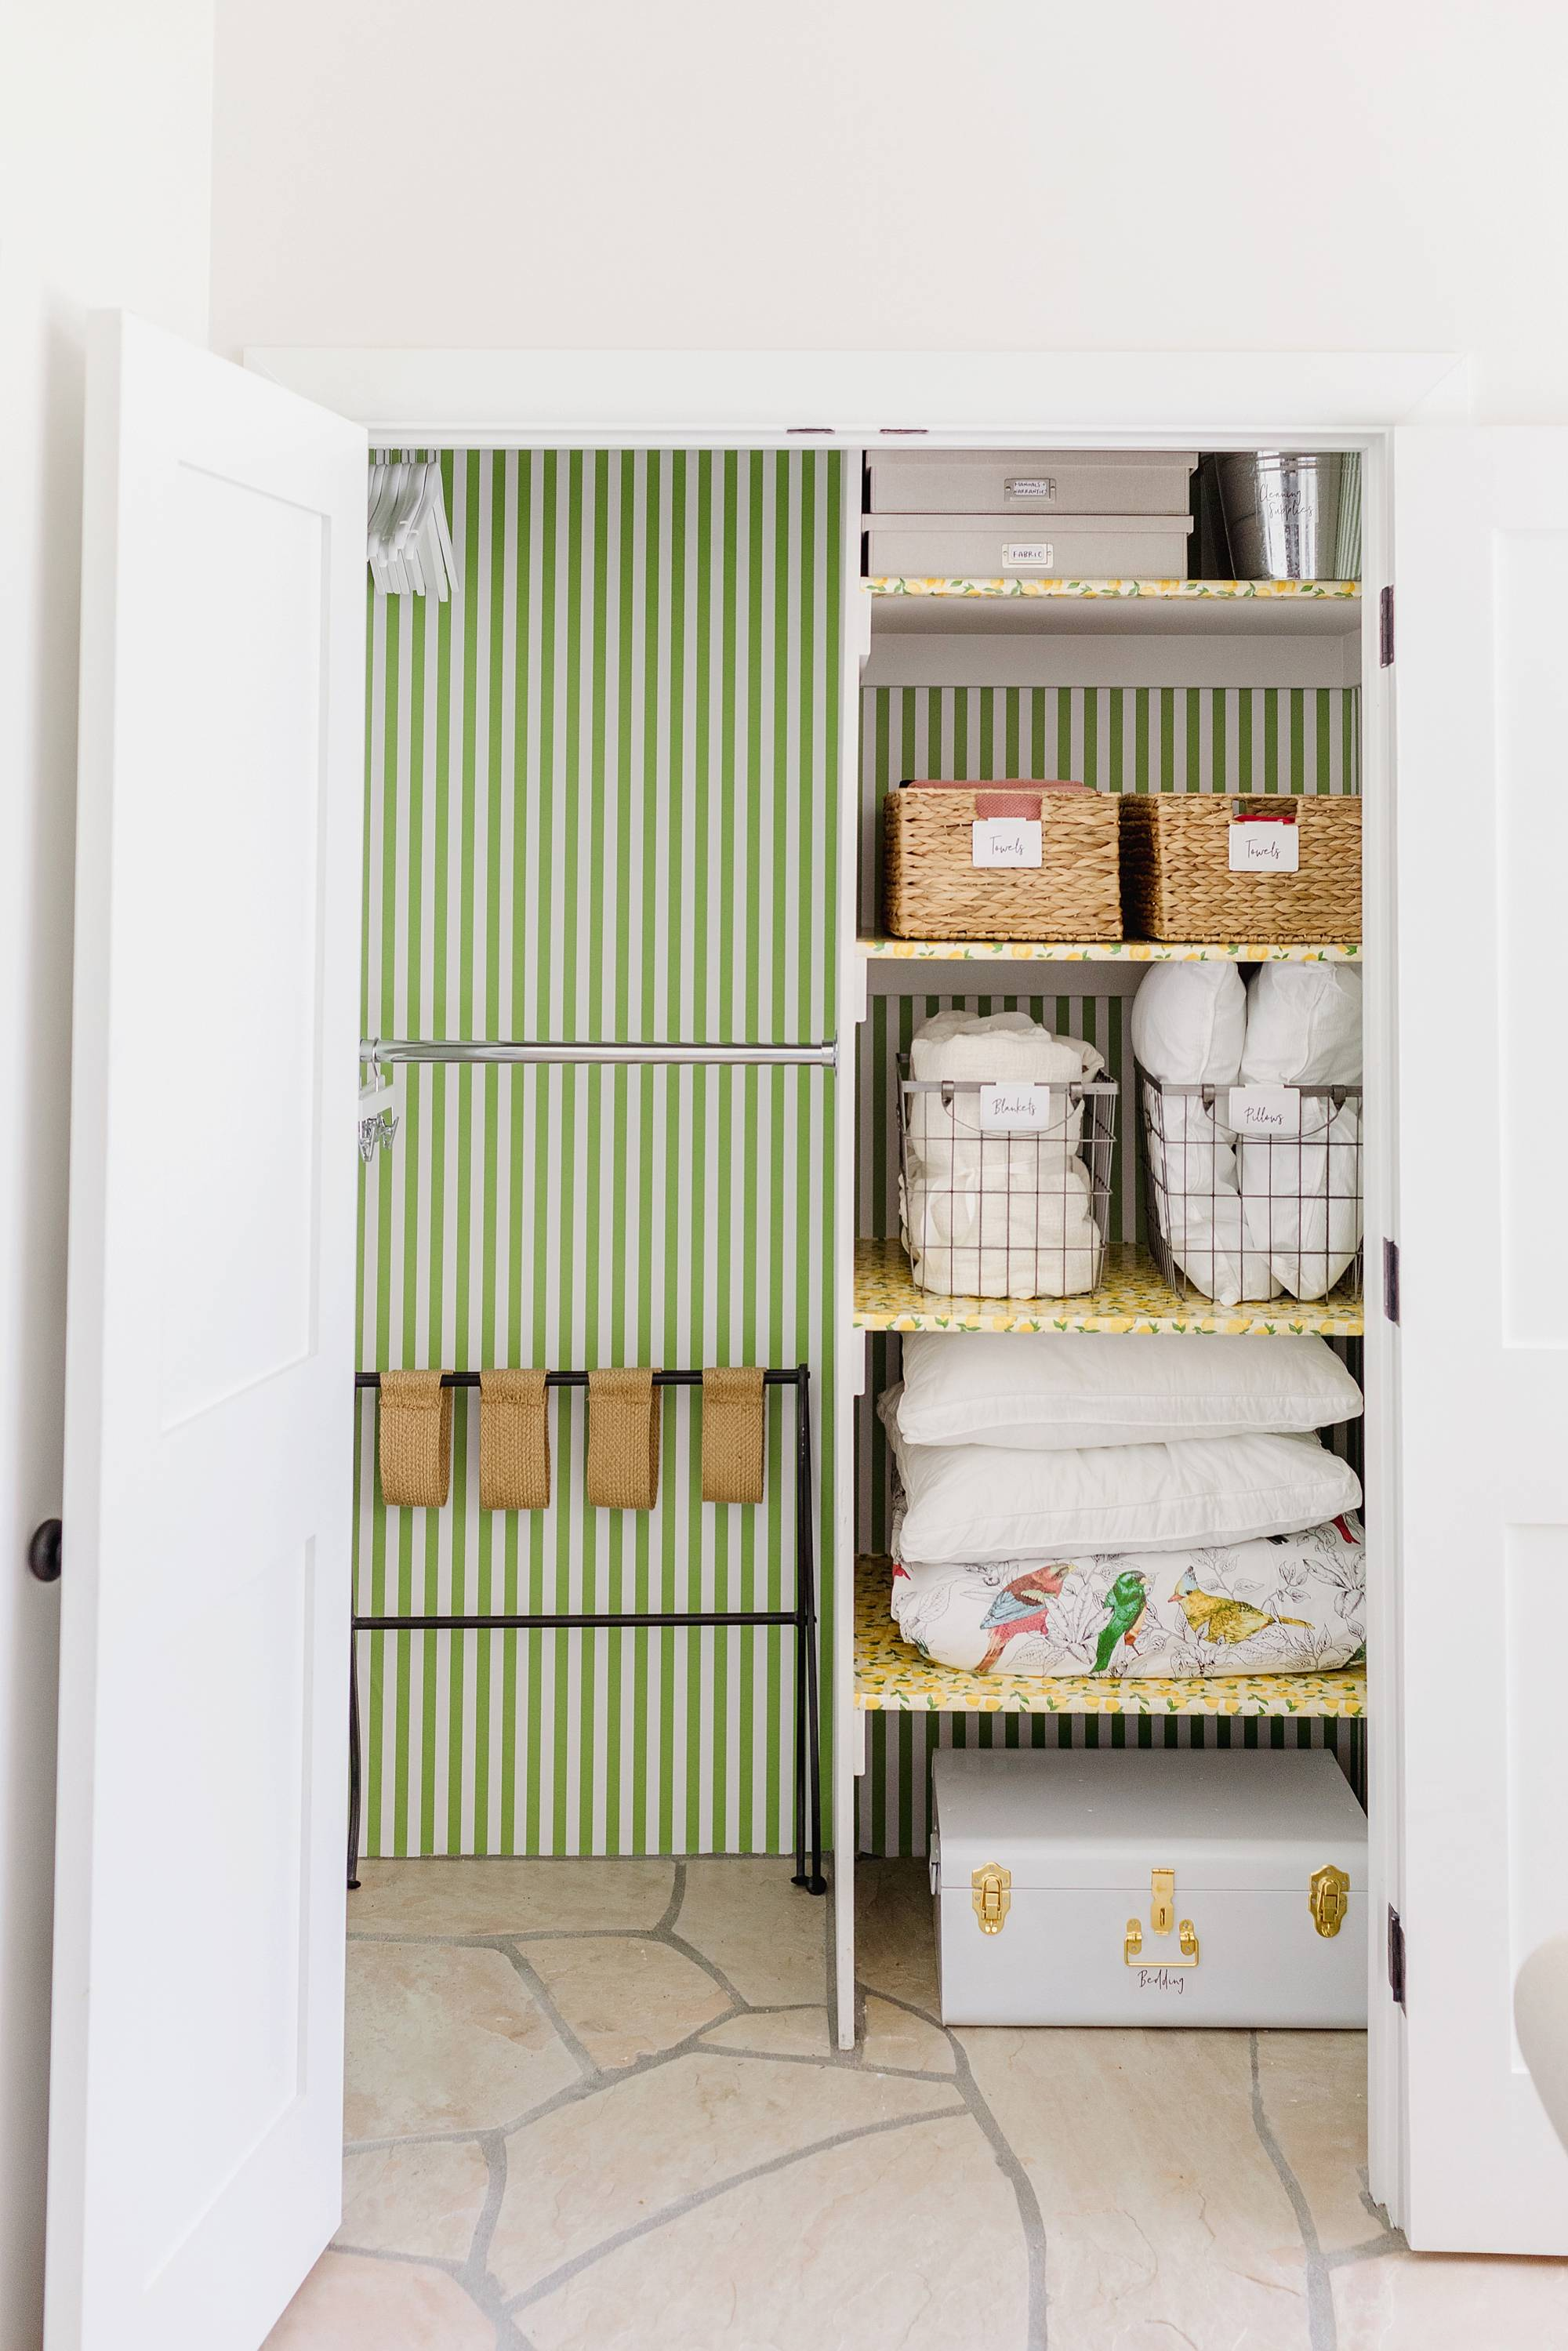 guest closet lemon print green white stripe wallpaper